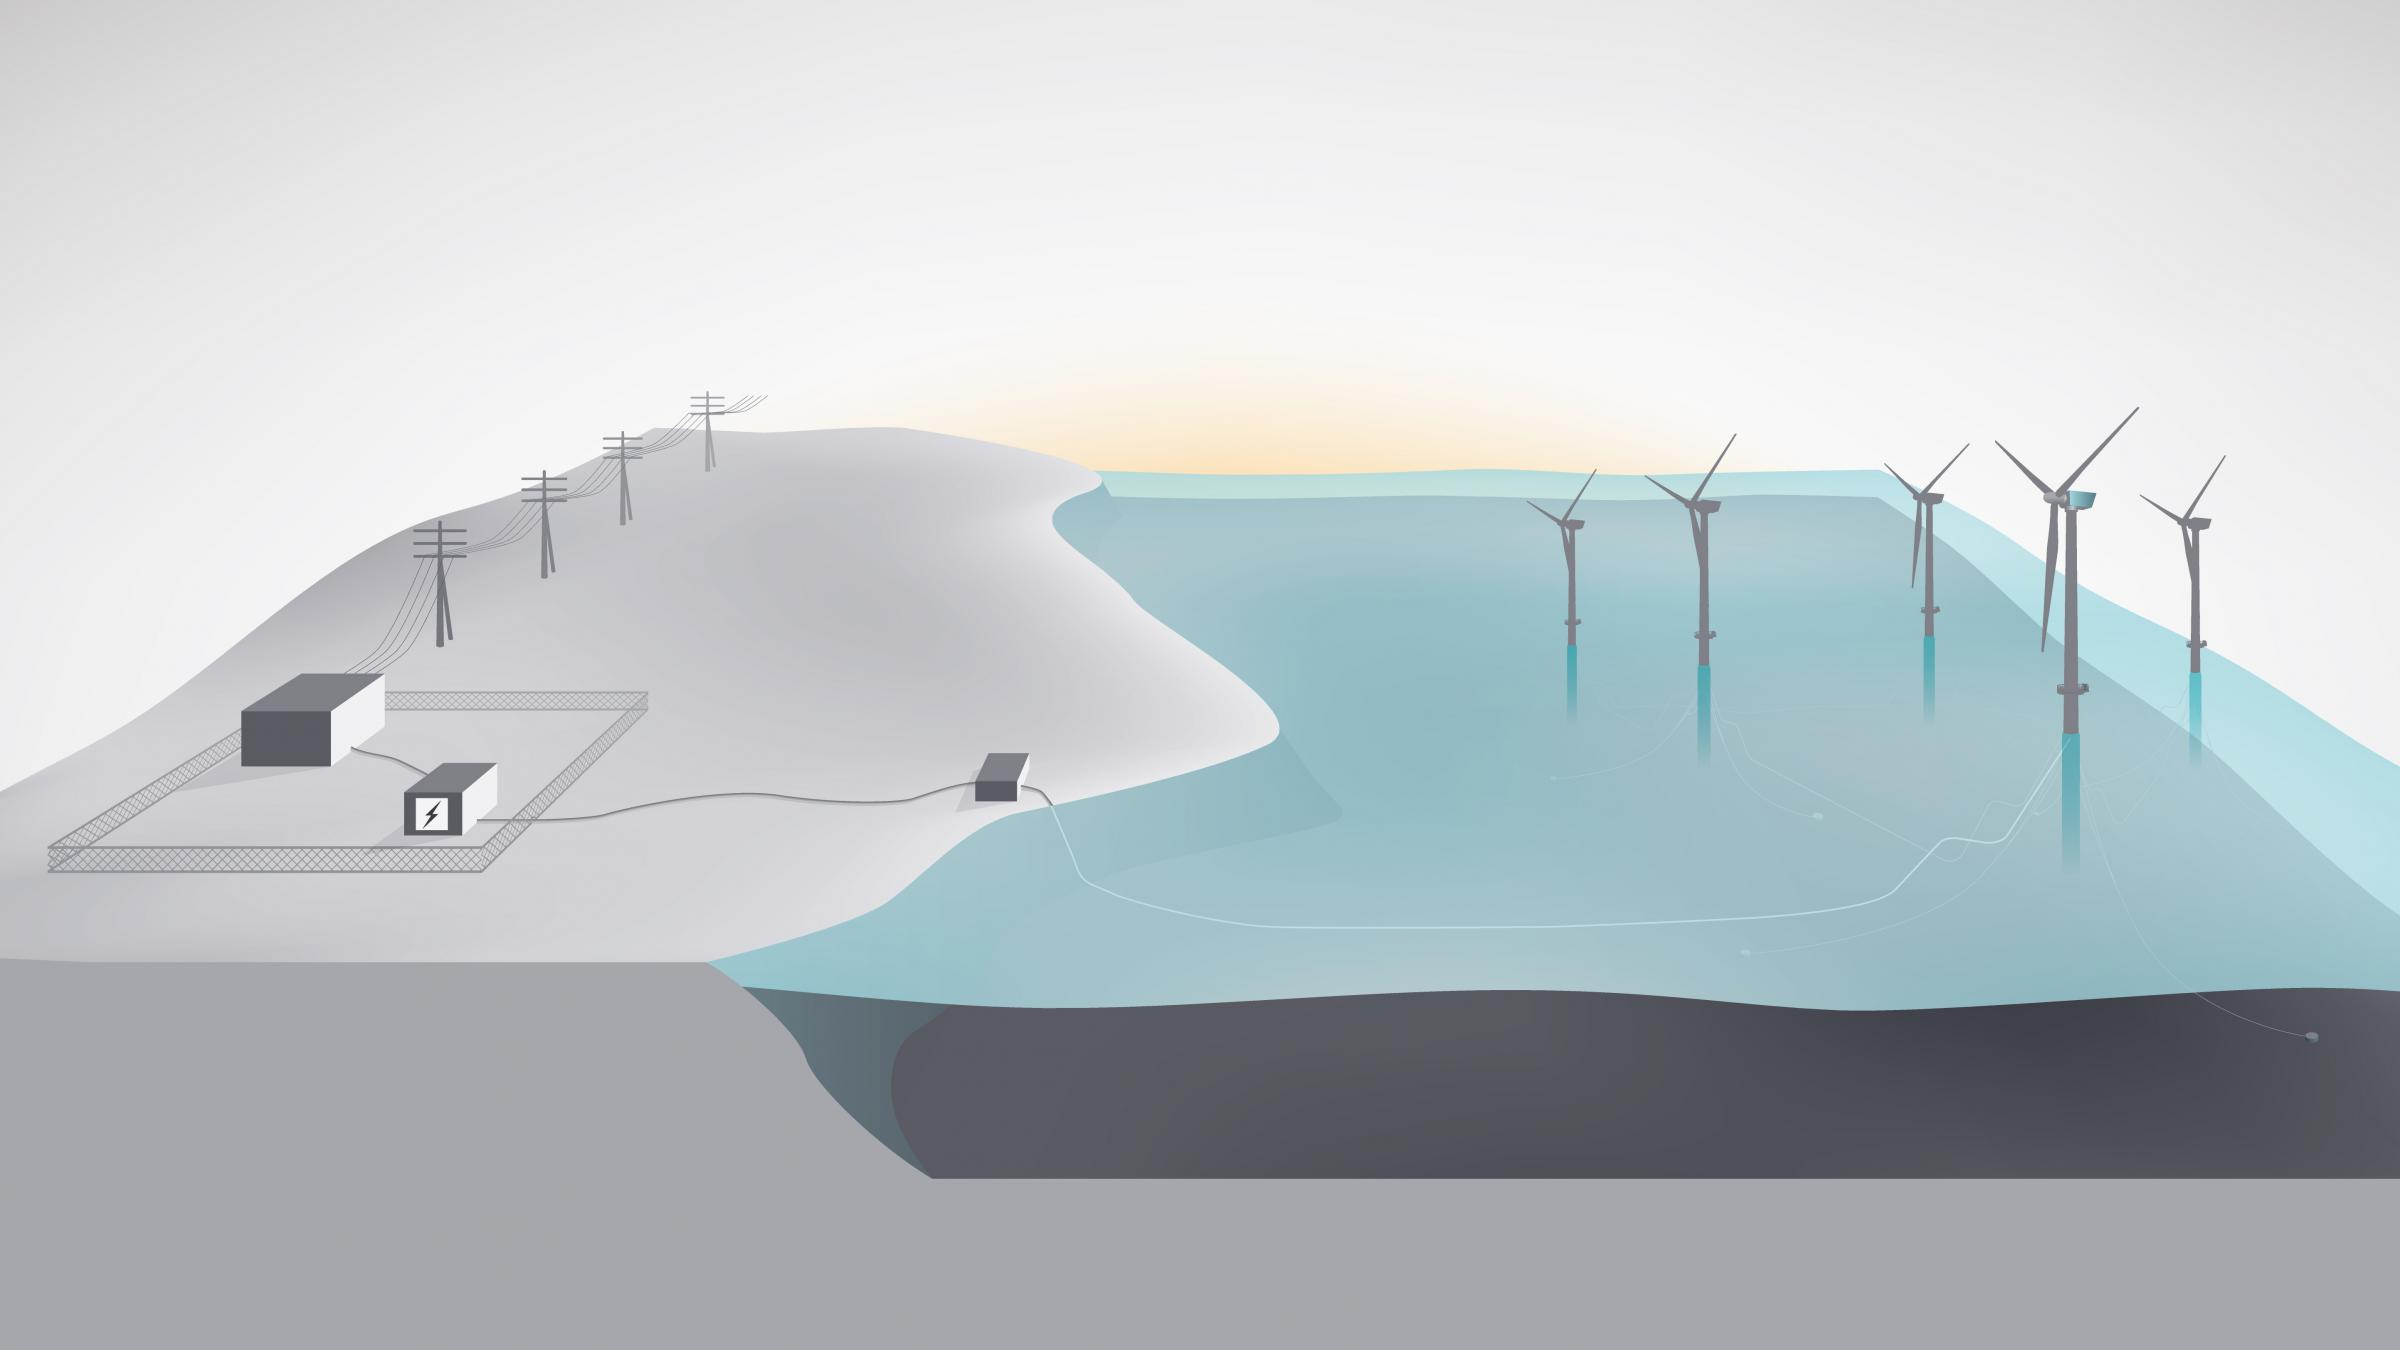 First offshore wind farm 'to save energy' creates ripple effect